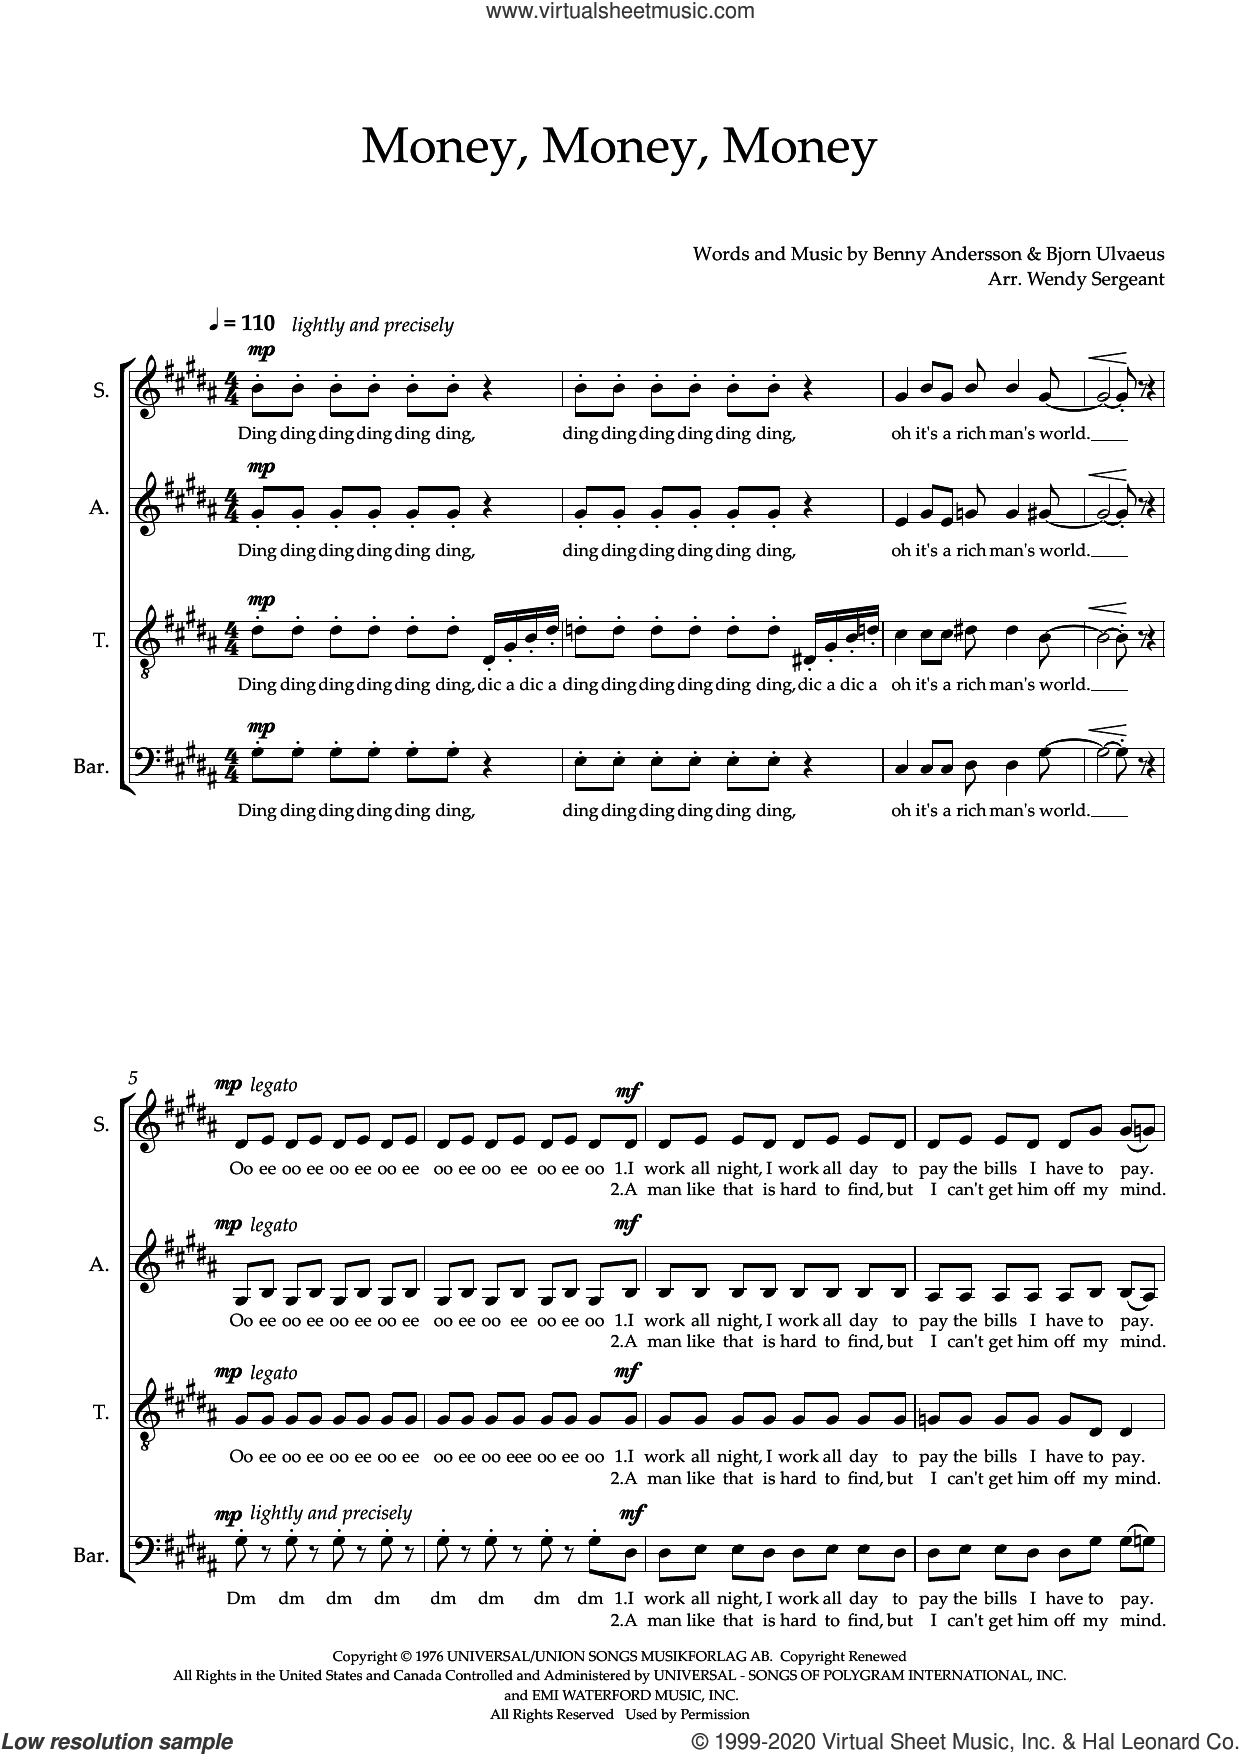 Money, Money, Money (arr. Wendy Sergeant) sheet music for choir (SATB: soprano, alto, tenor, bass) by ABBA, Wendy Sergeant, Benny Andersson and Bjorn Ulvaeus, intermediate skill level